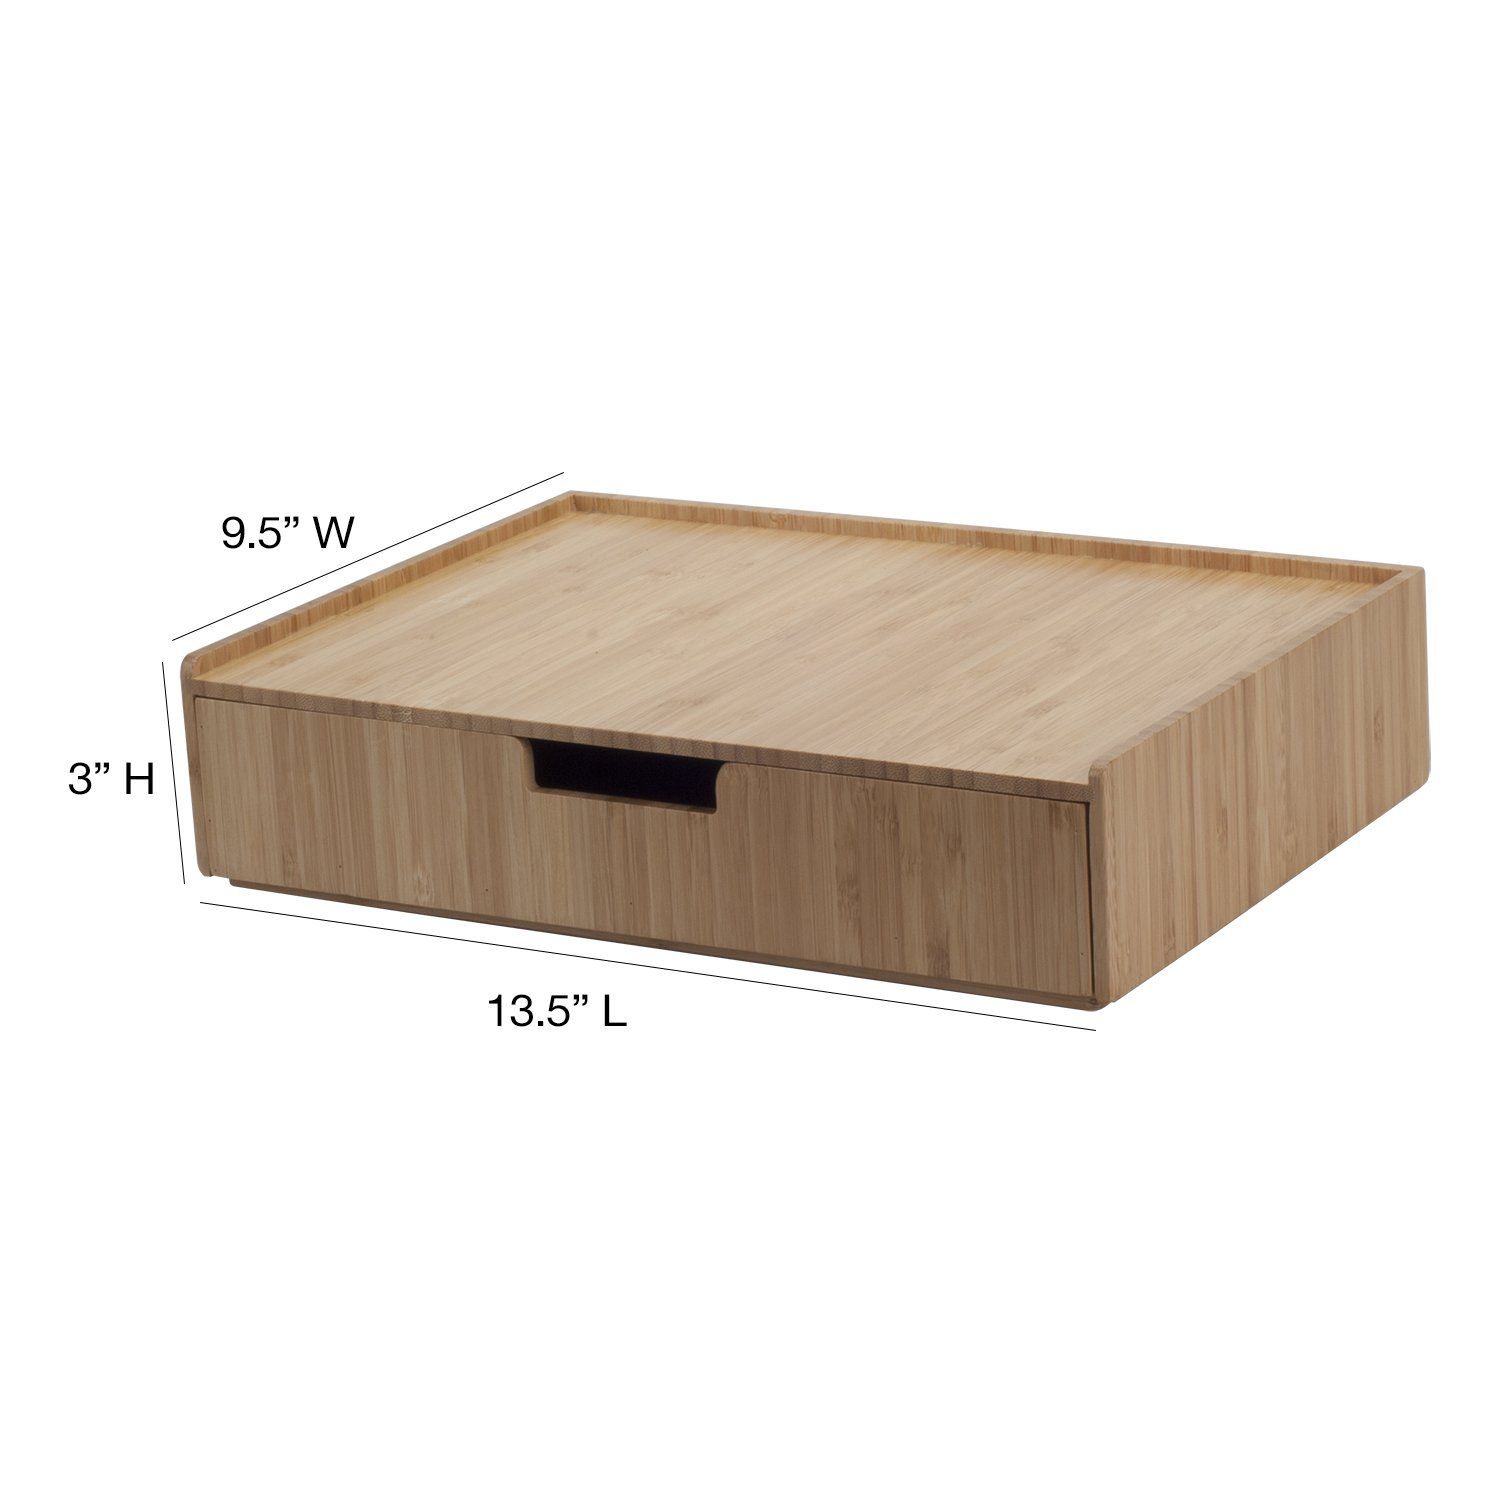 7 Slot w//Drawer Combo Storage for Office Supplies /& Stationary Items Bamboo Desktop File Folder Organizer